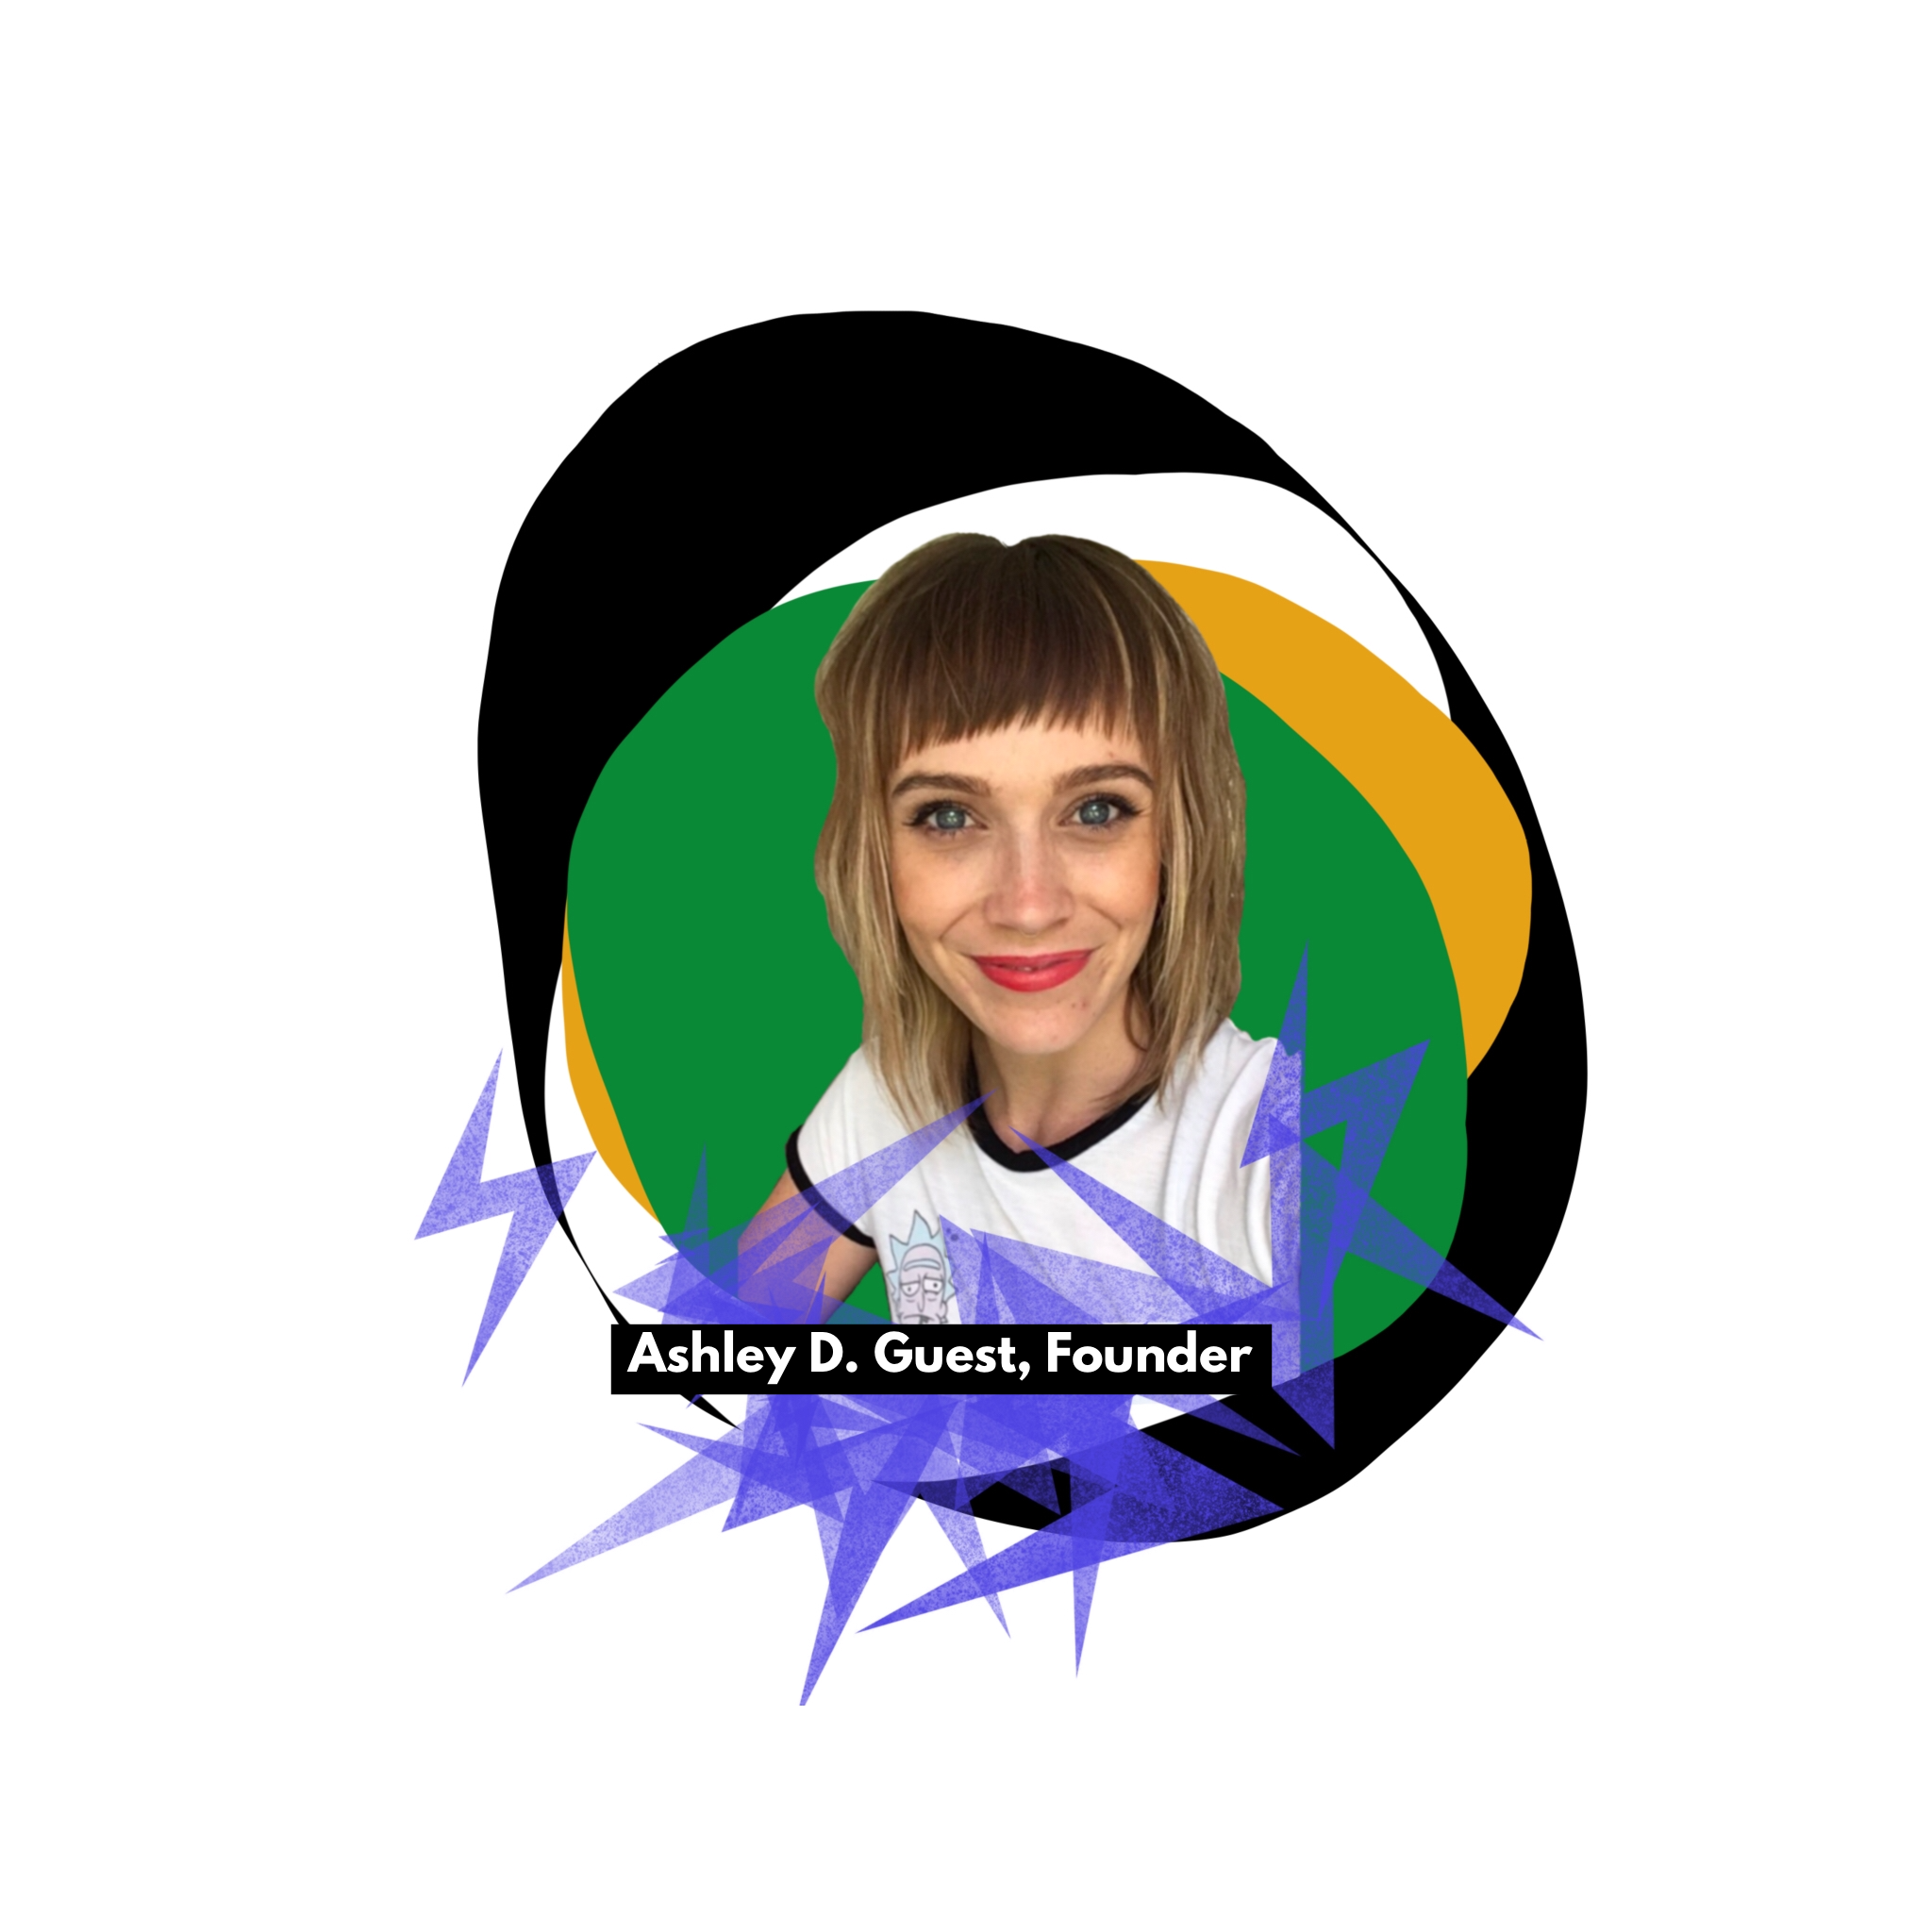 female who is the founder of Free Art Birmingham Alabama with green black white and yellow colors behind her; name Ashley Guest